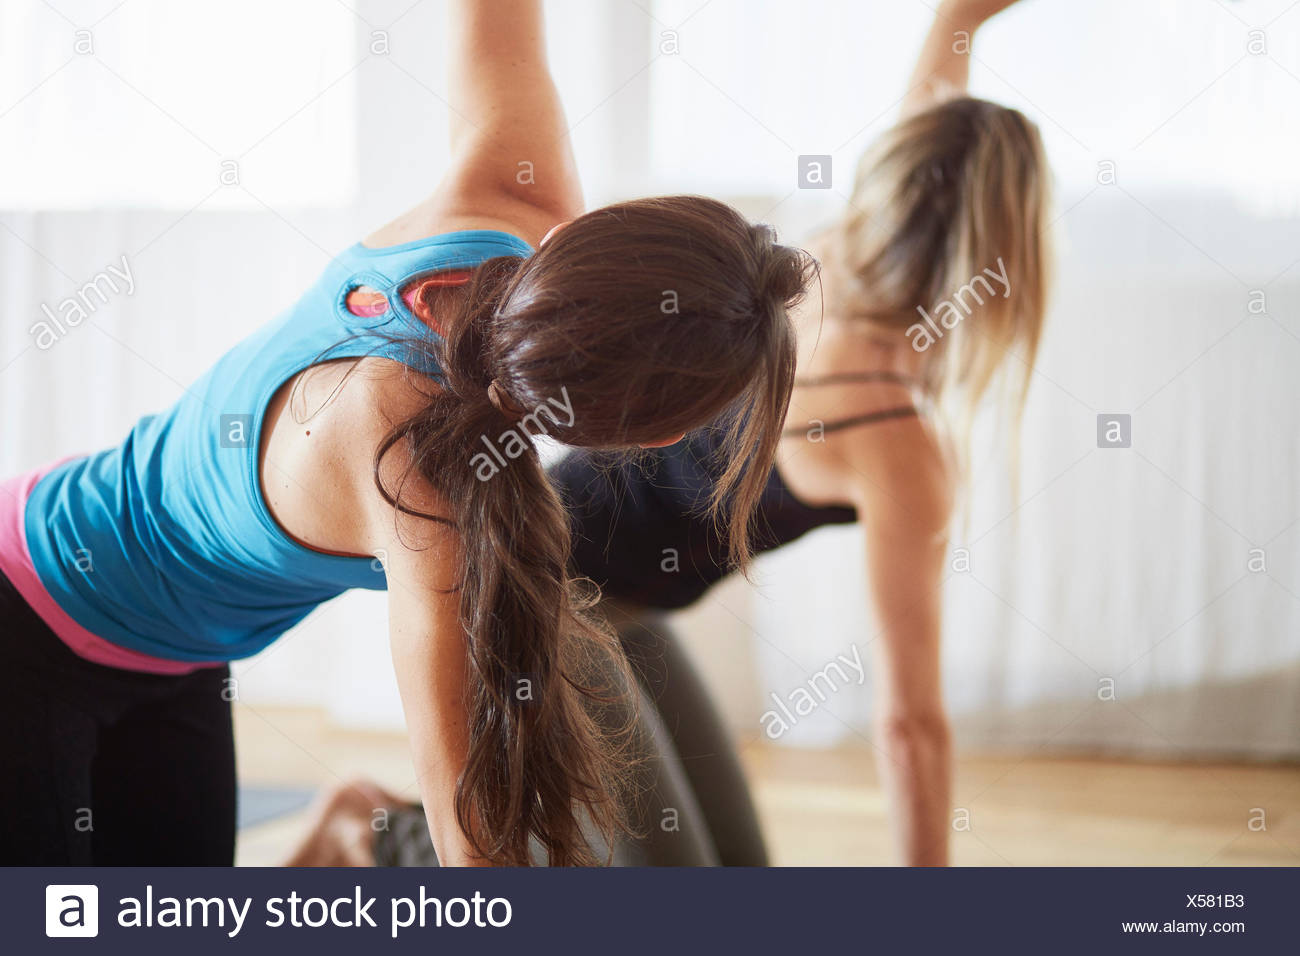 Two women kneeling and raising arms in pilates class - Stock Image